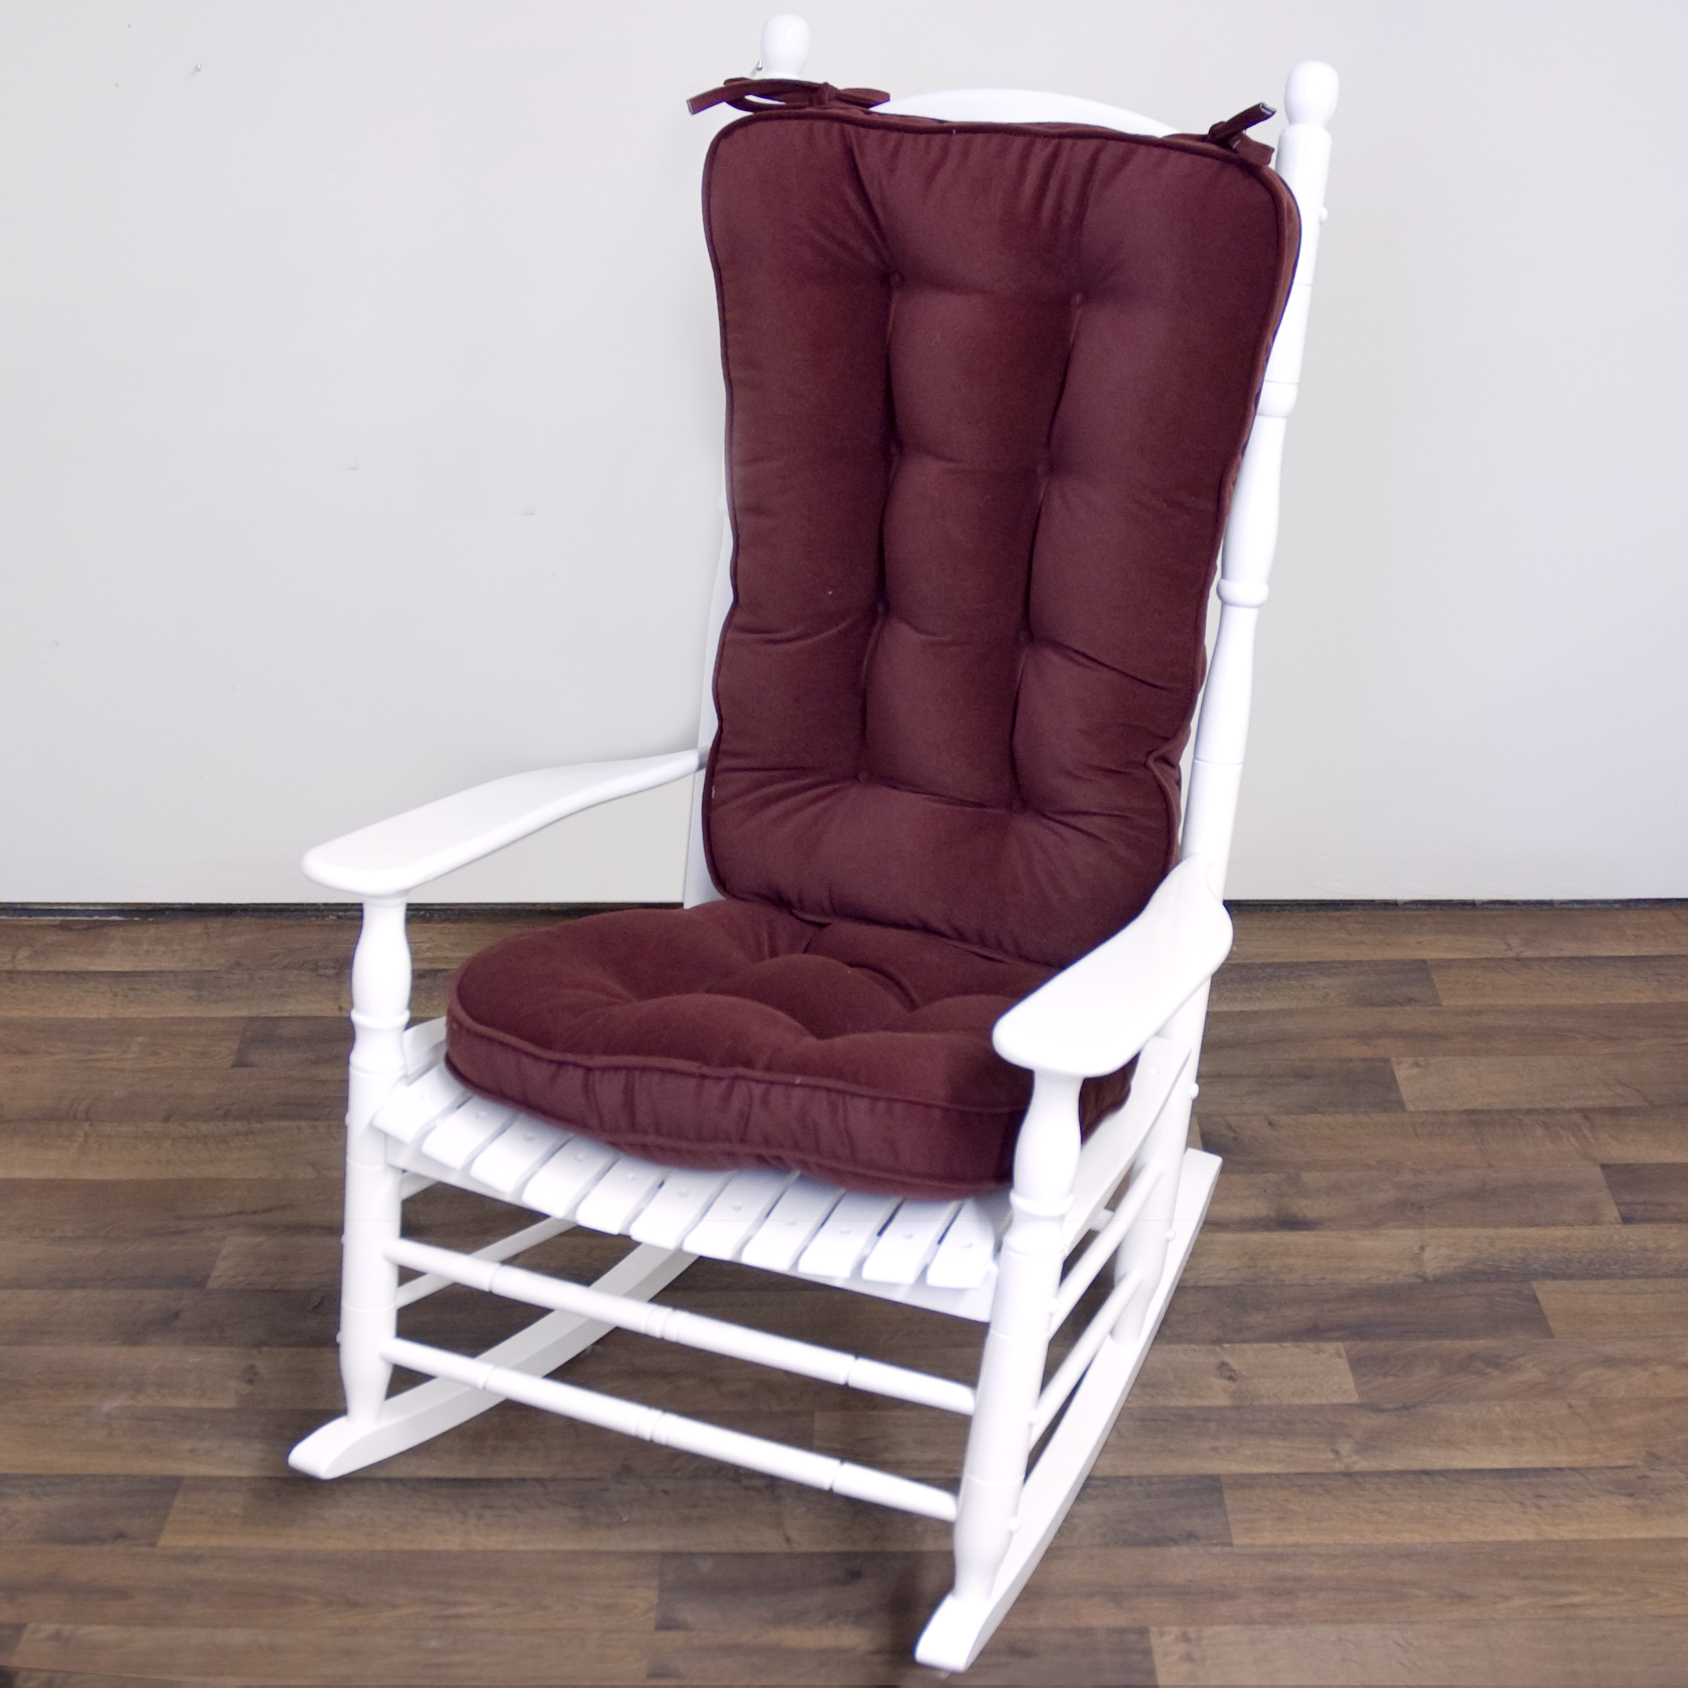 Rocking Chair With Cushions Cushions For Rocking Chairs Chair Pads And Cushions